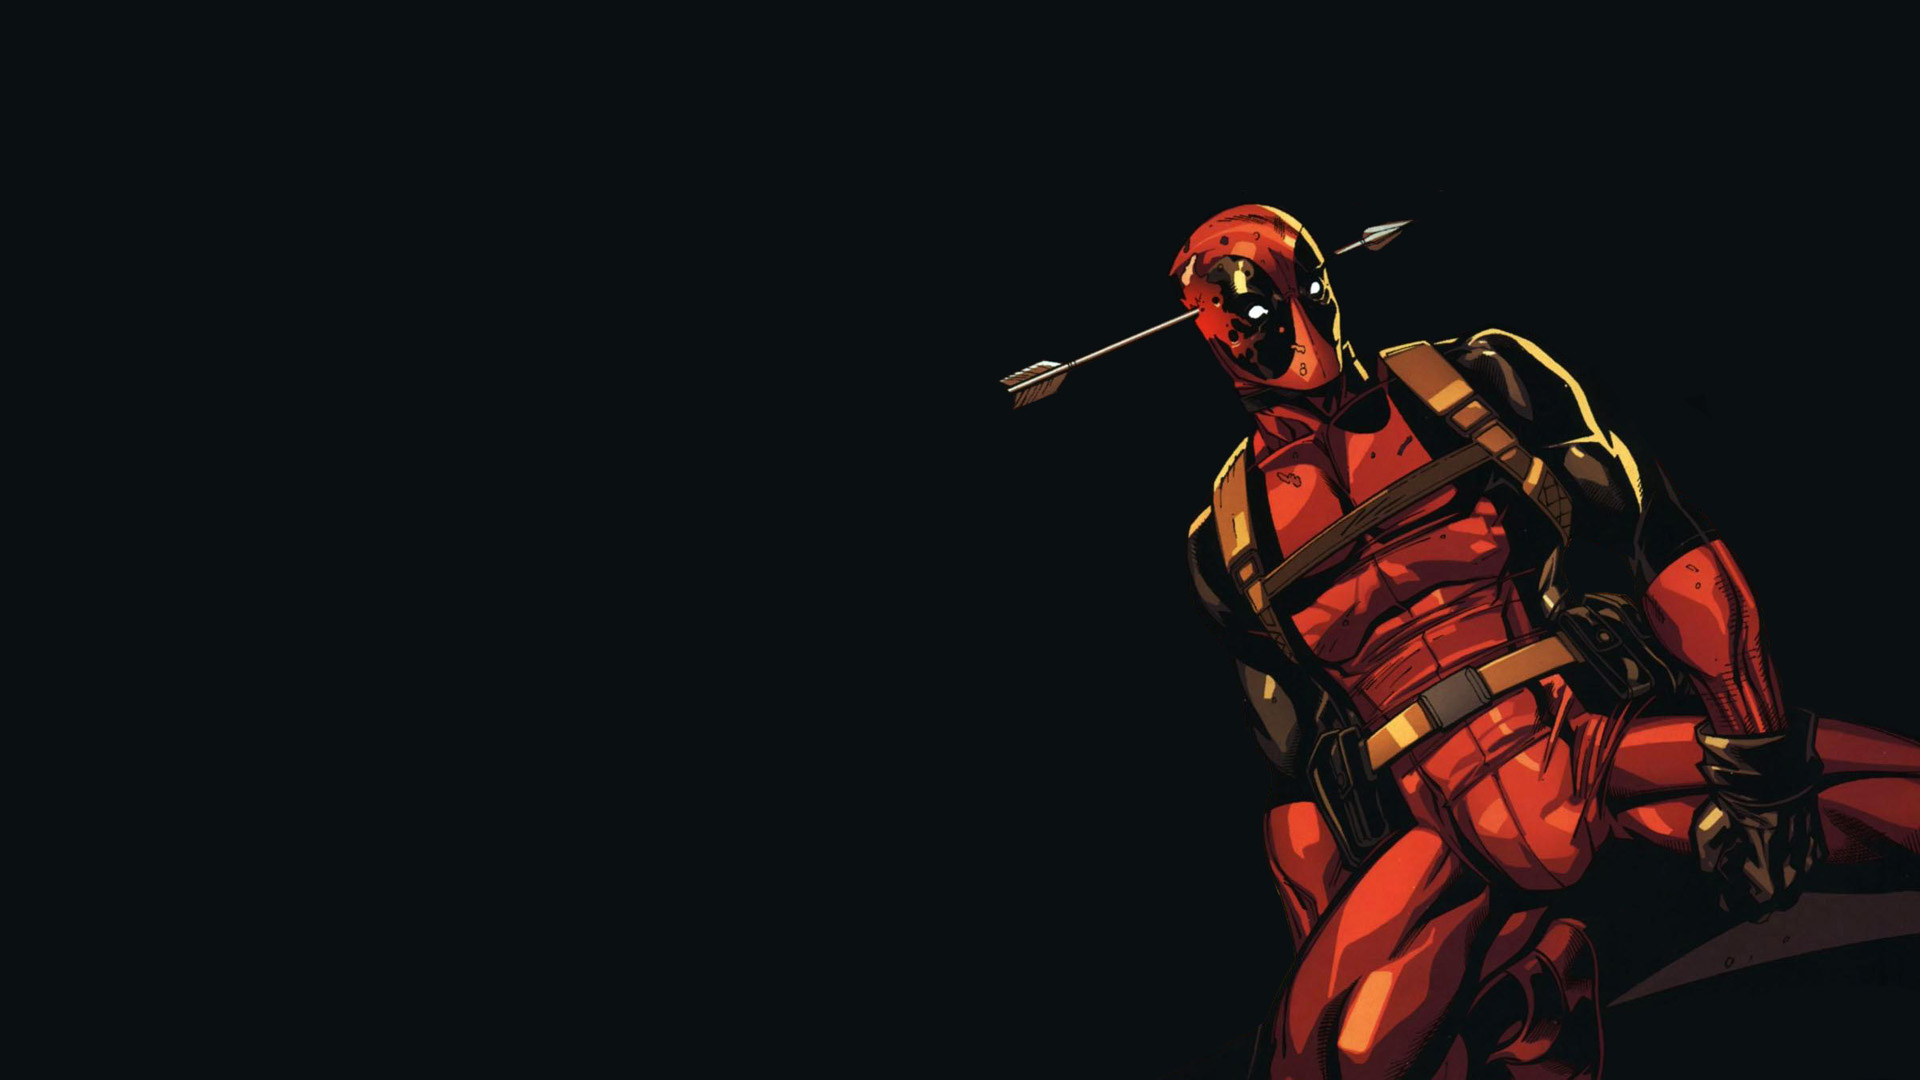 deadpool-comics-wallpapers